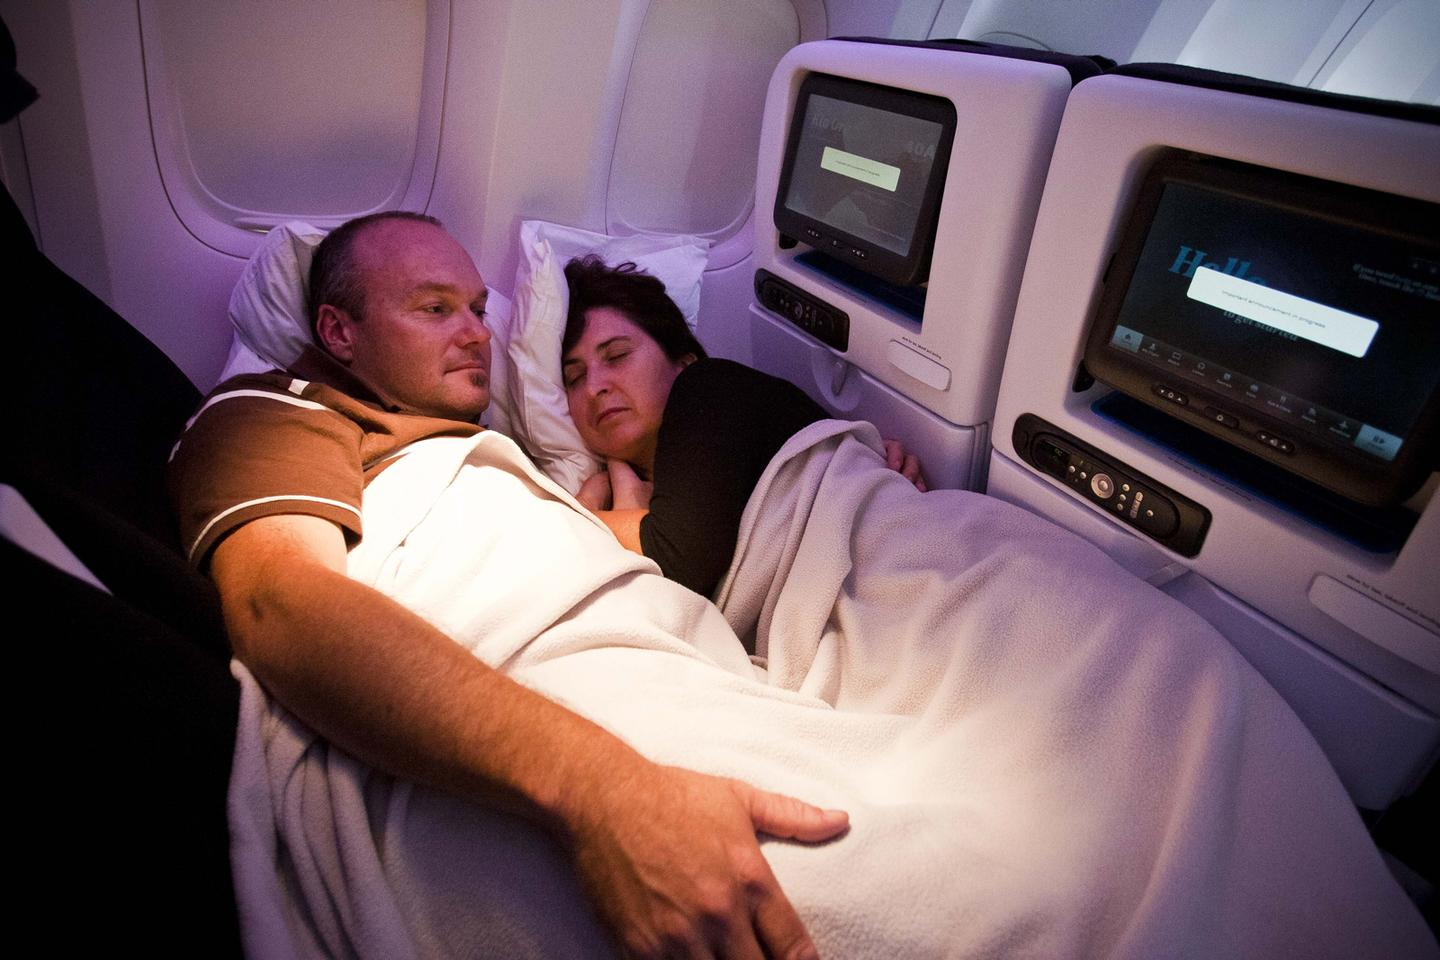 Andy and Barbara Maclean, passengers on Air New Zealand's 777-300ER's inaugural flight from Los Angeles to London, were some of the first cuddlers in the new Skycouch